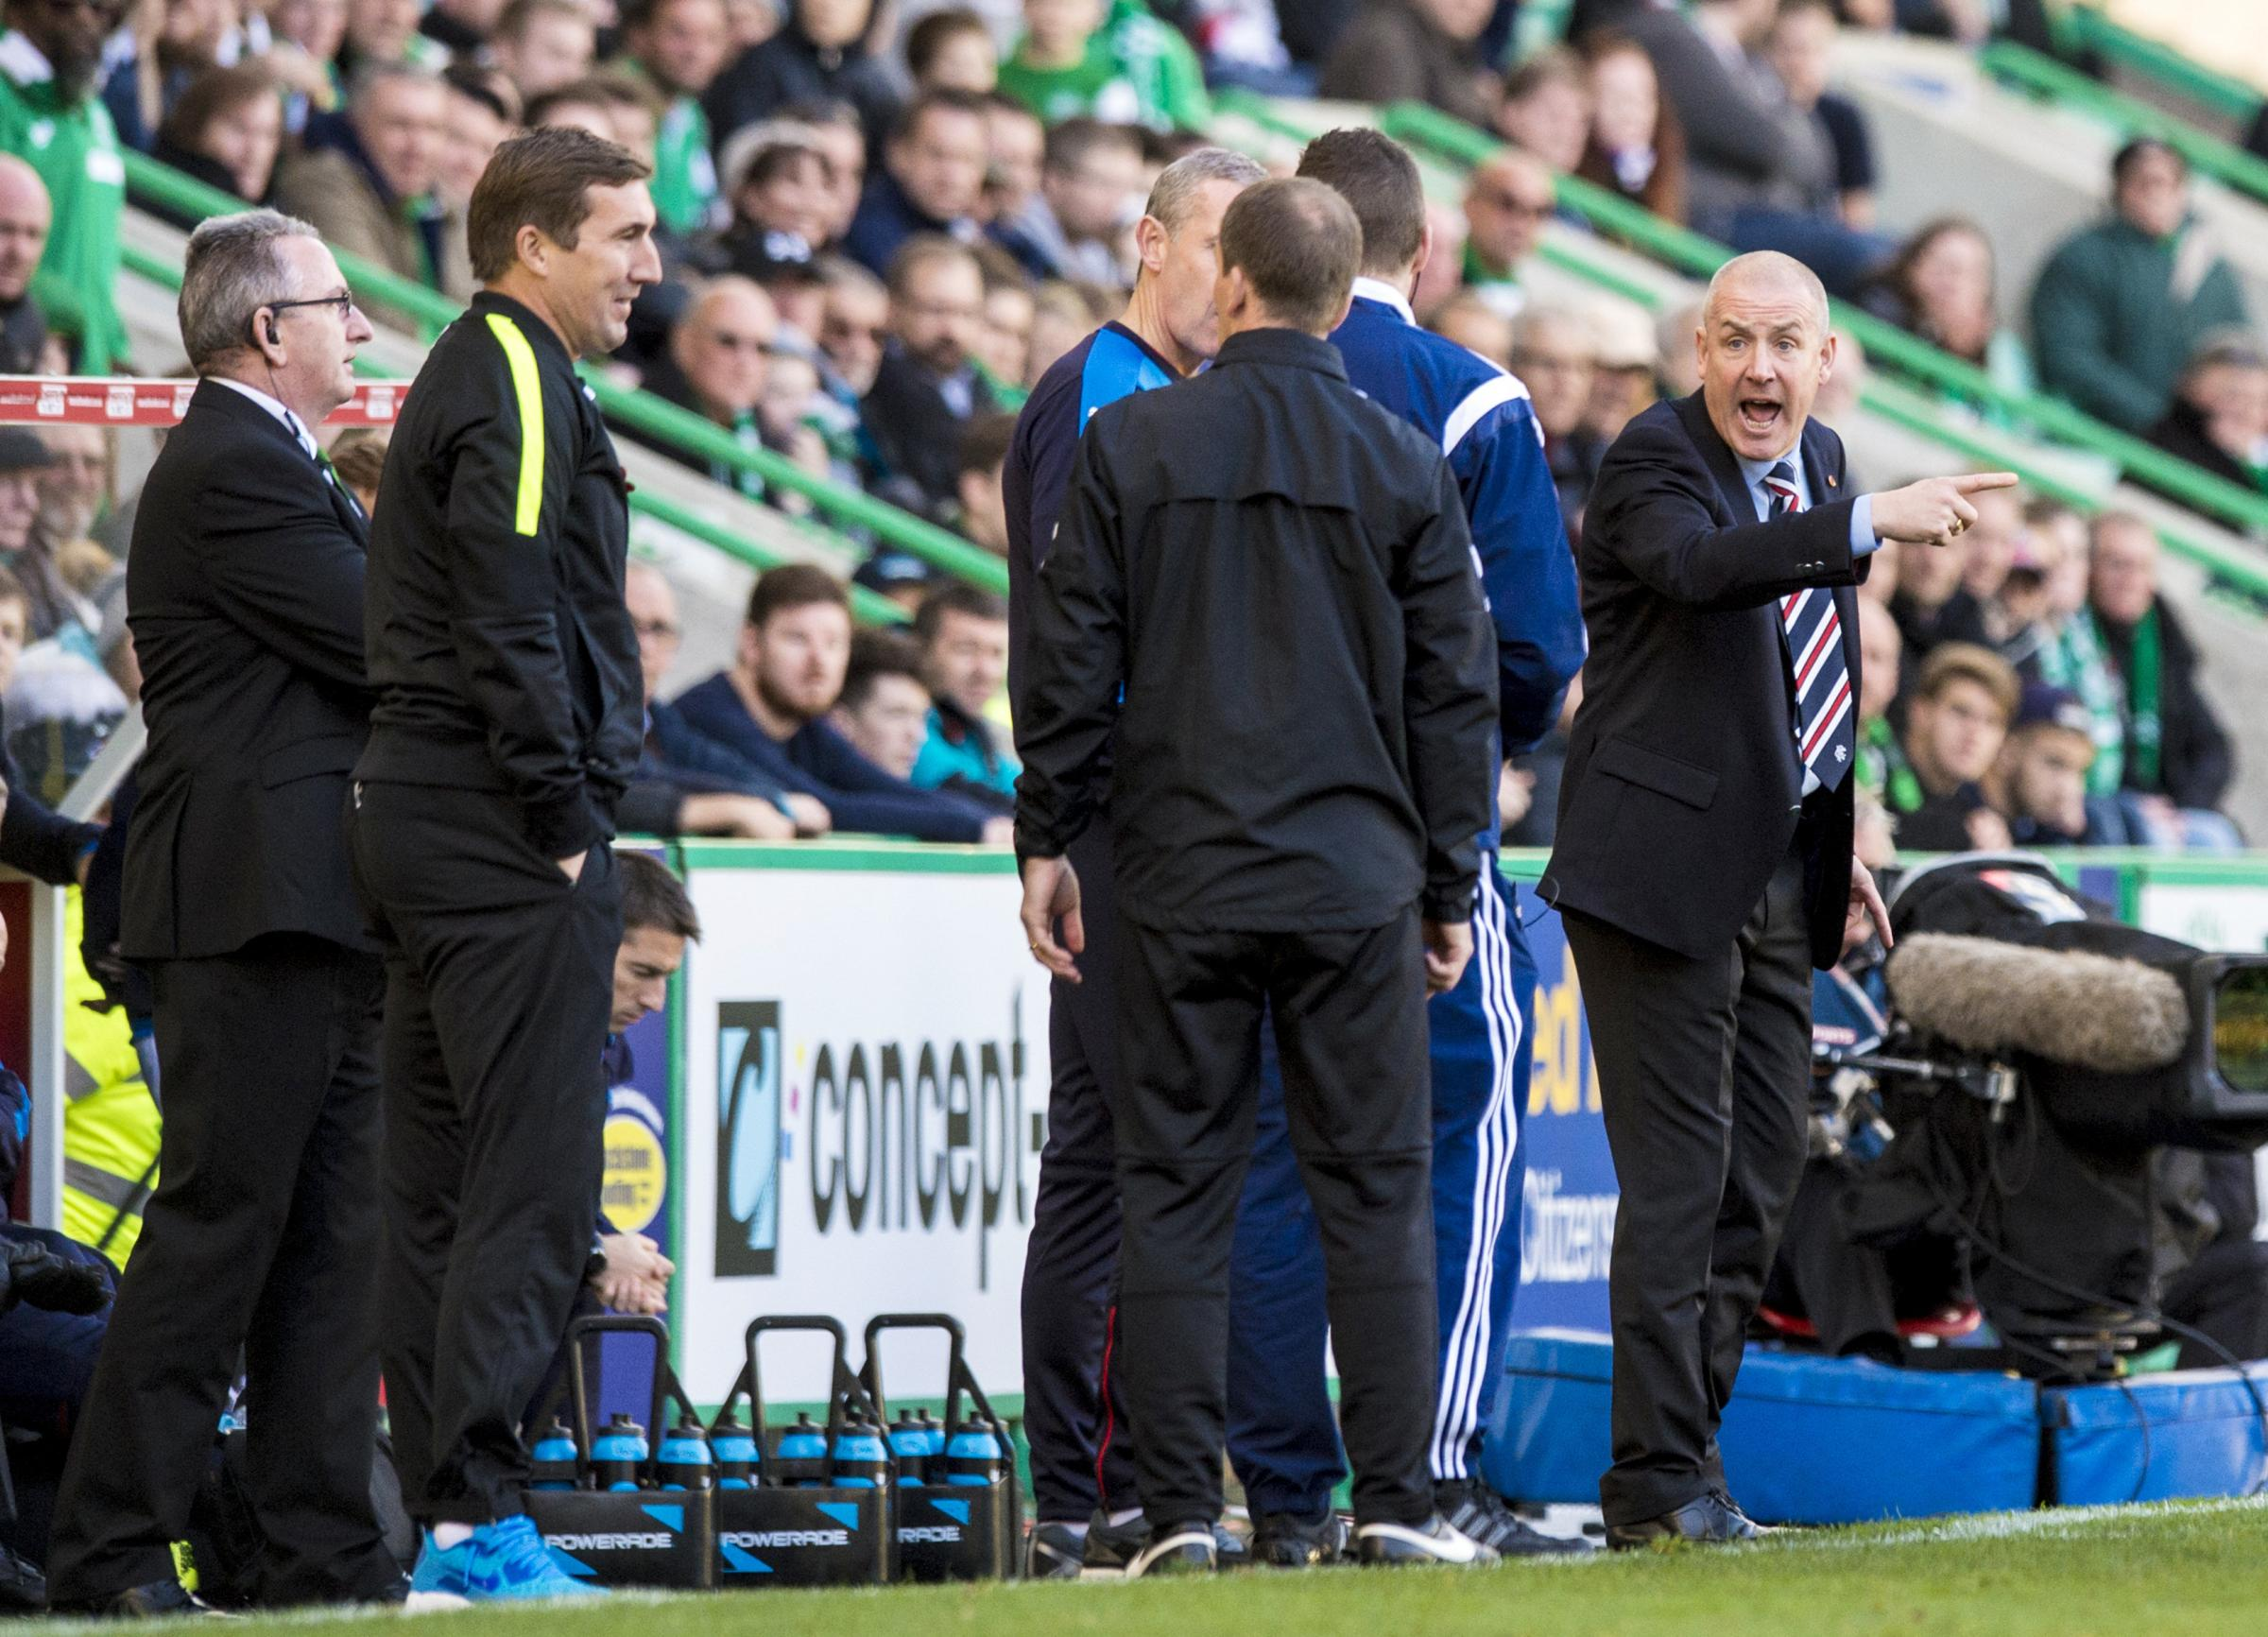 MIND YOUR OWN BUSINESS: Rangers manager Mark Warburton (right) has been irked by the latest claims made by Hibernian rival Alan Stubbs about their respective budgets